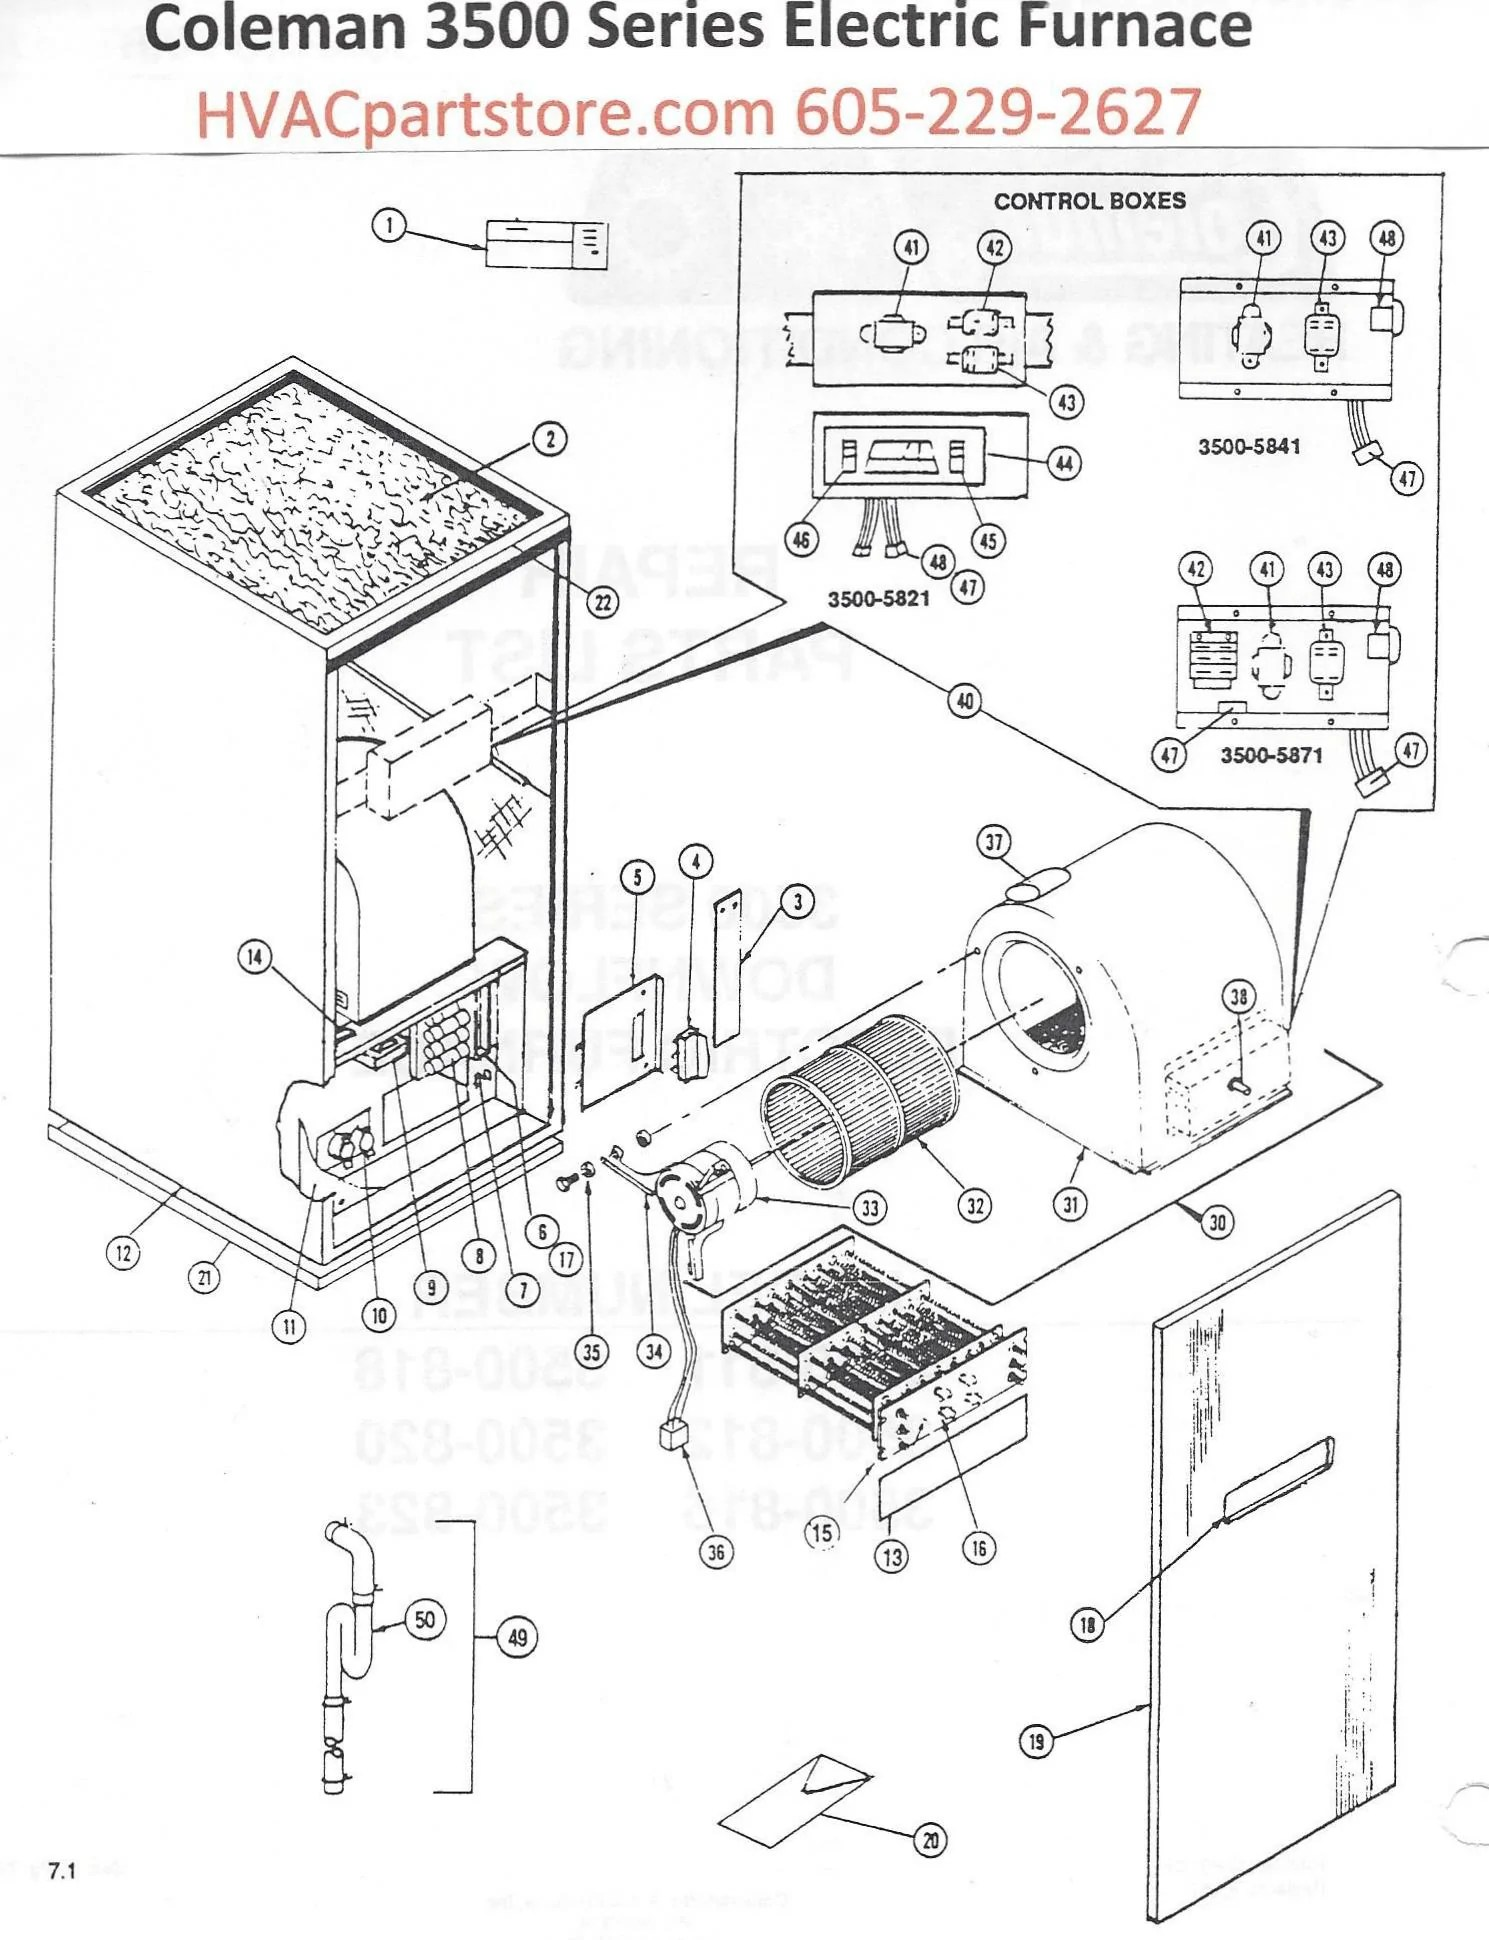 nordyne air conditioner wiring diagram speakon xlr 3500-811 coleman electric furnace parts – hvacpartstore